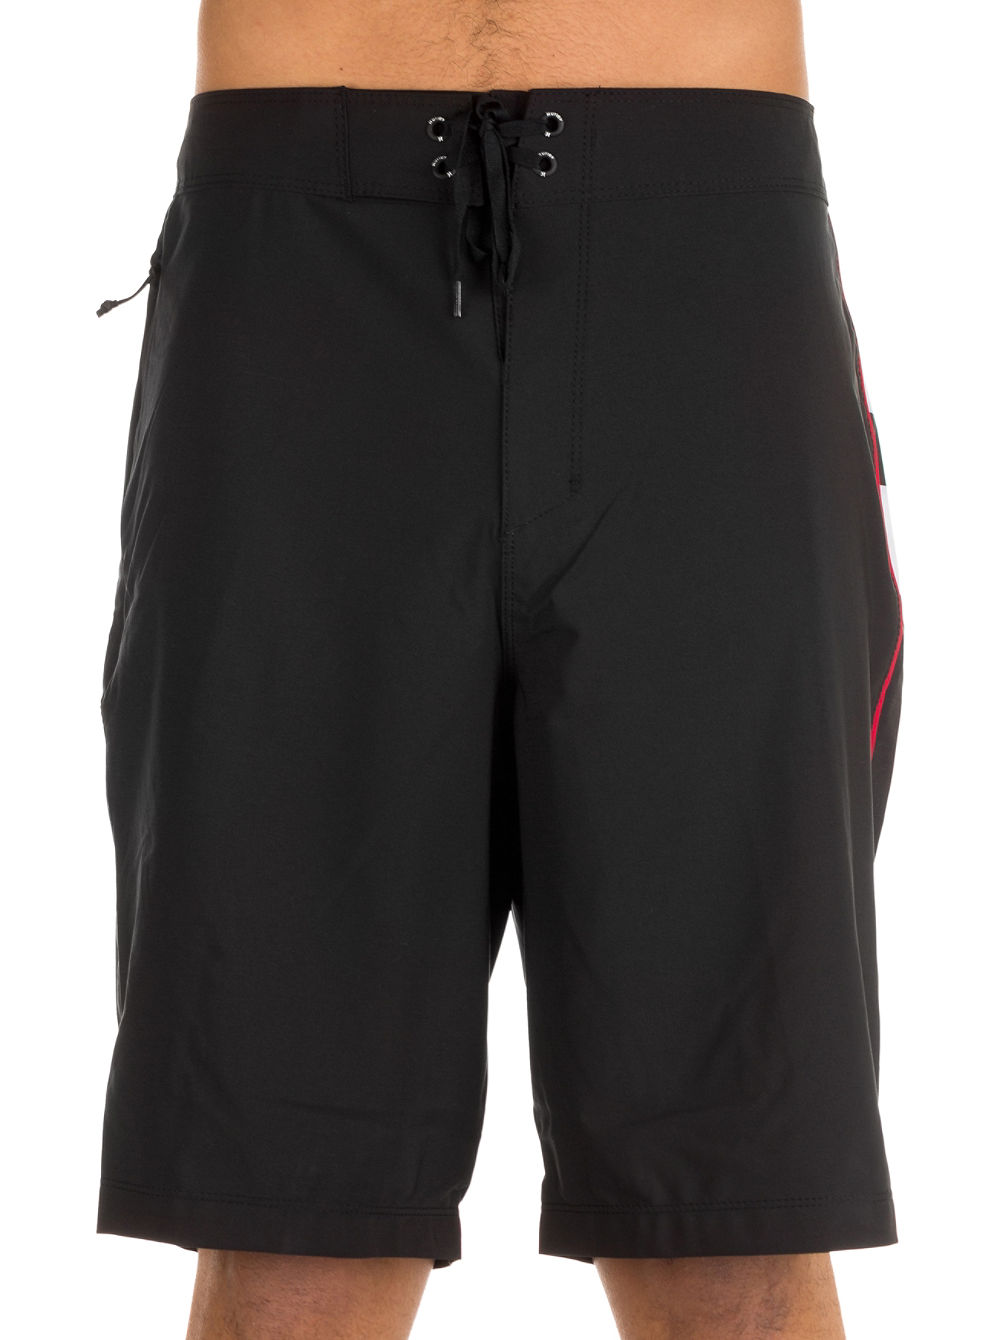 Phantom JJF 4 Boardshorts